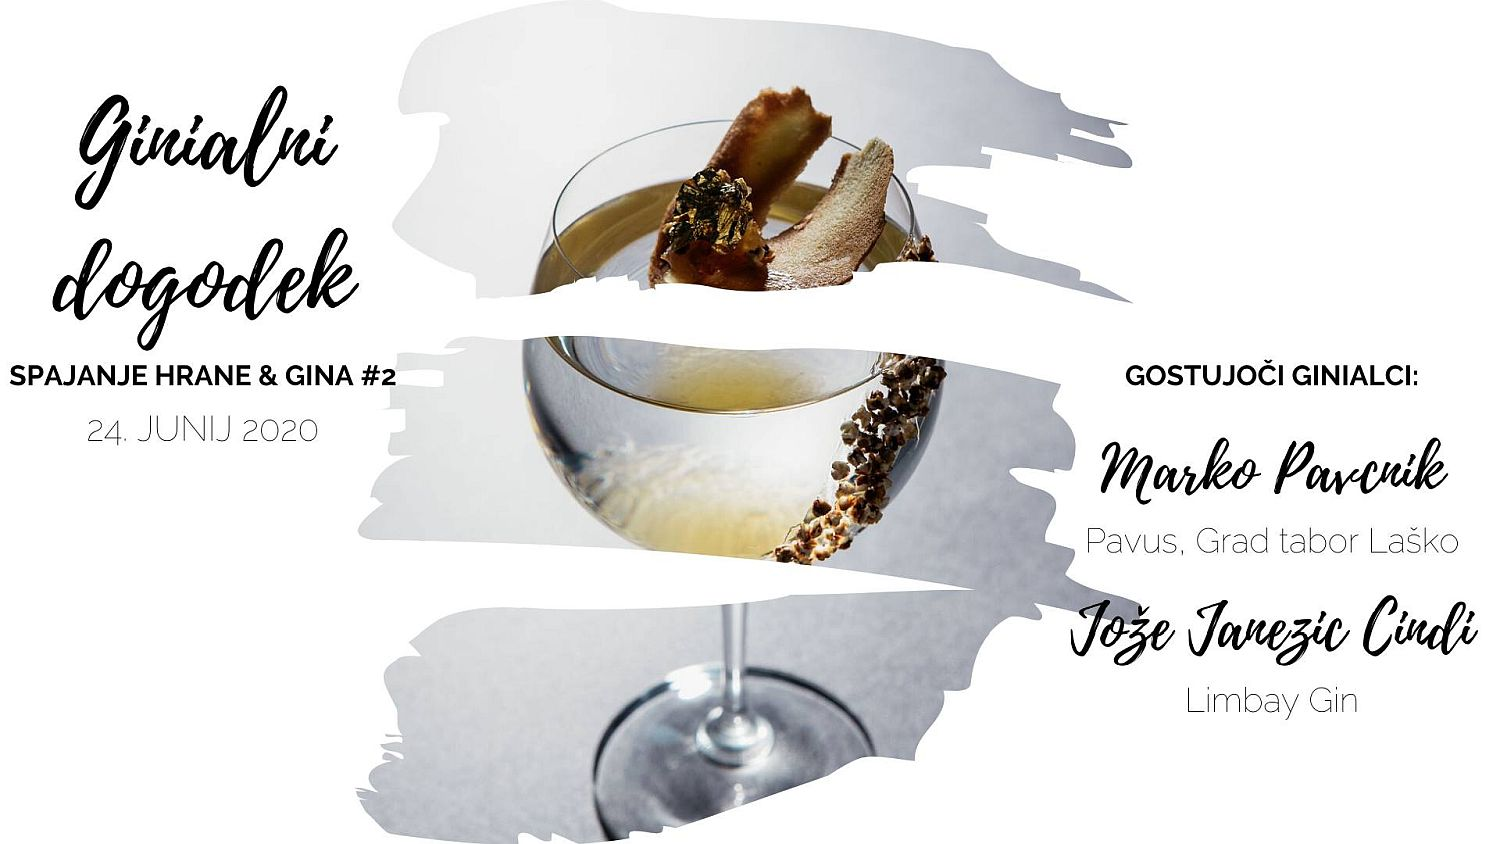 Poster for food and gin pairing event at Restaurant 1906 of Hotel Triglav Bled